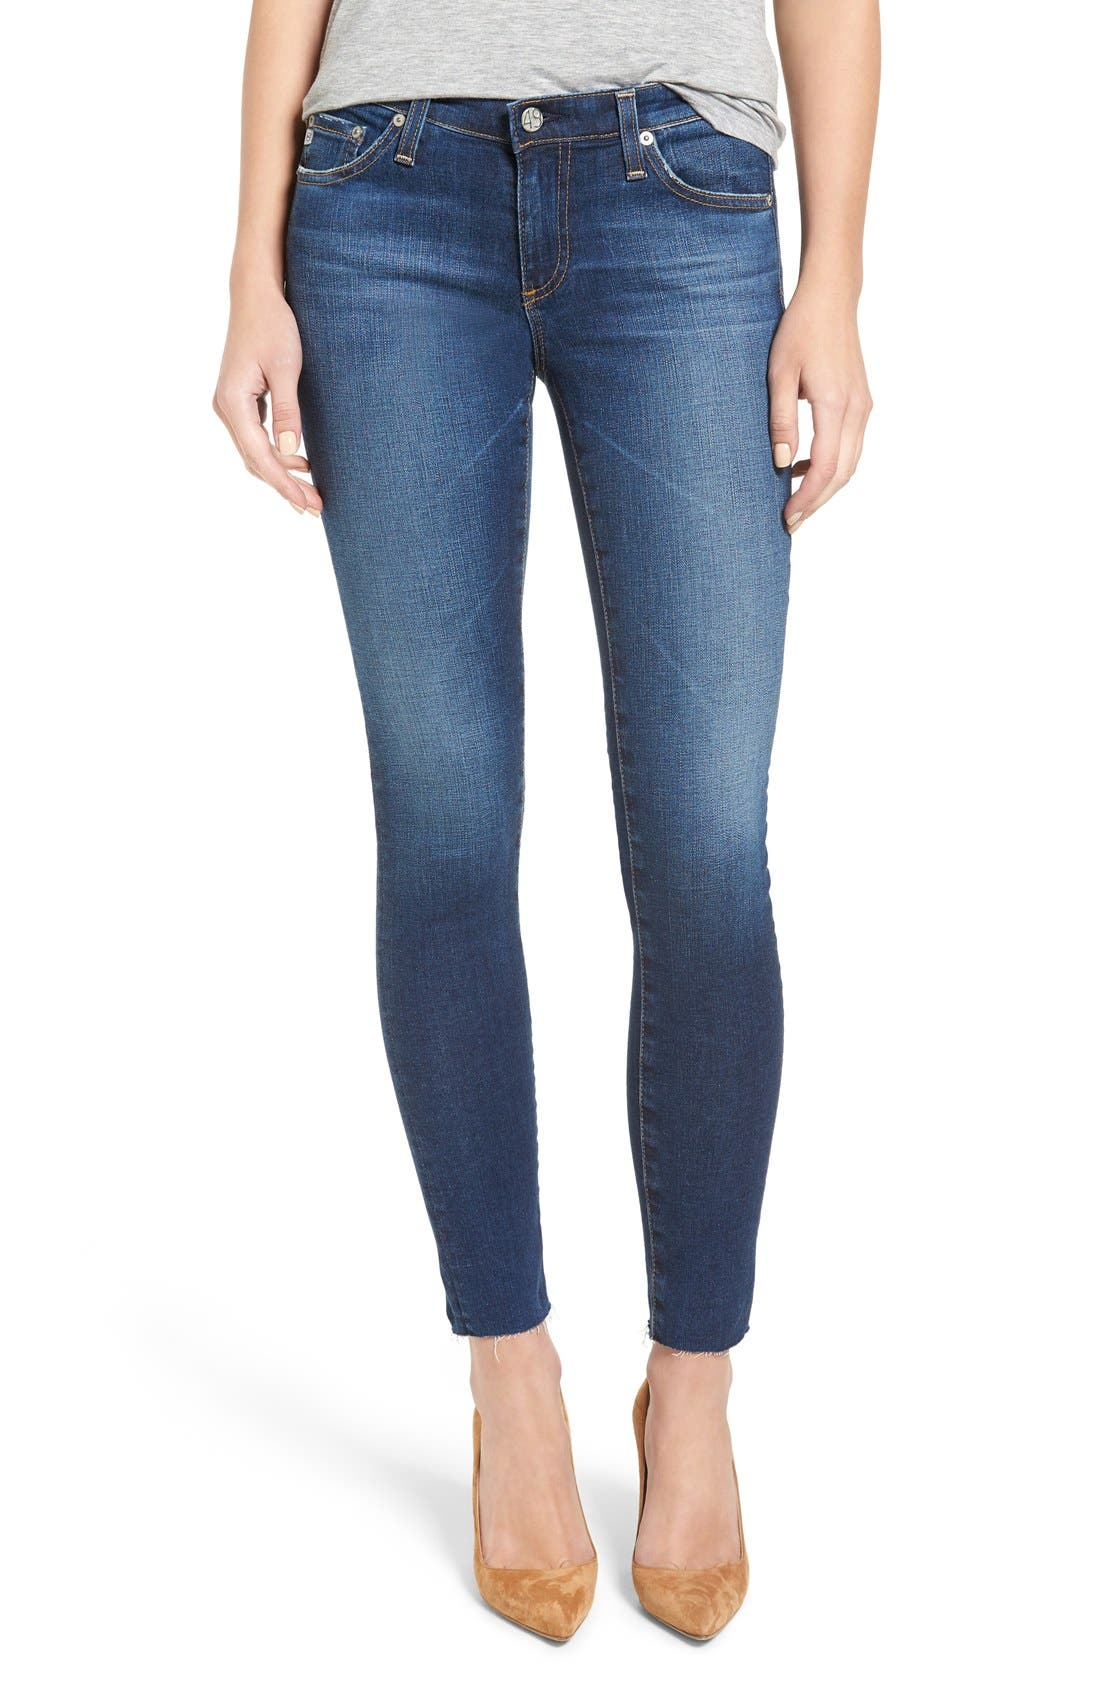 'The Legging' Ankle Jeans,                         Main,                         color, 7Yr Break W/ Raw Hem